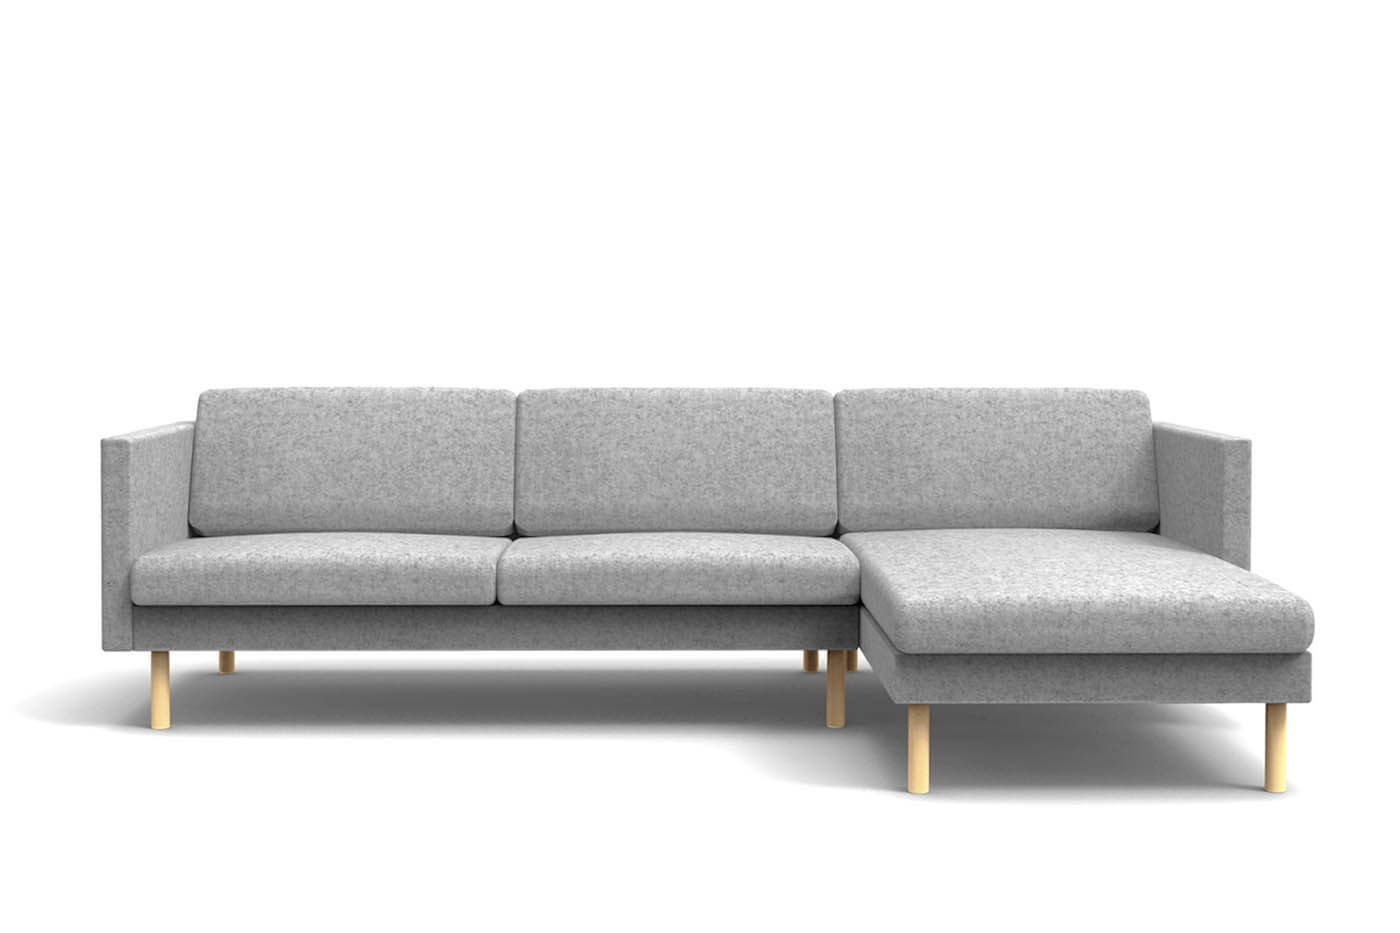 Newest Sofas With Chaise Lounge In Leaf Sofa Chaise Lounge Left – Oot Oot Studio (View 7 of 15)